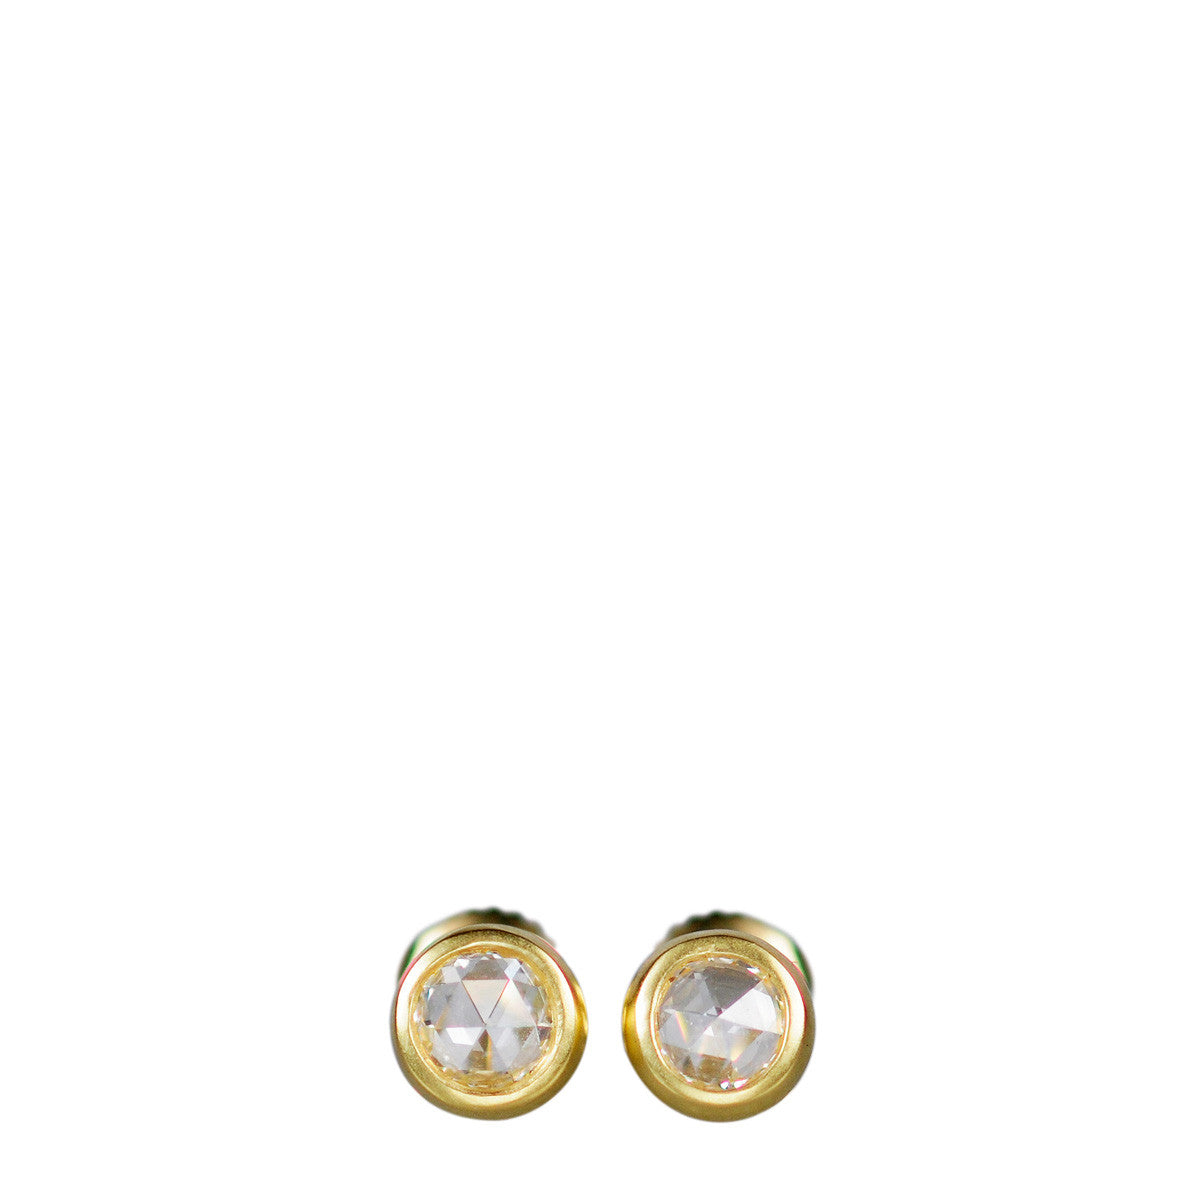 18K Gold 4.5mm Rose Cut Studs